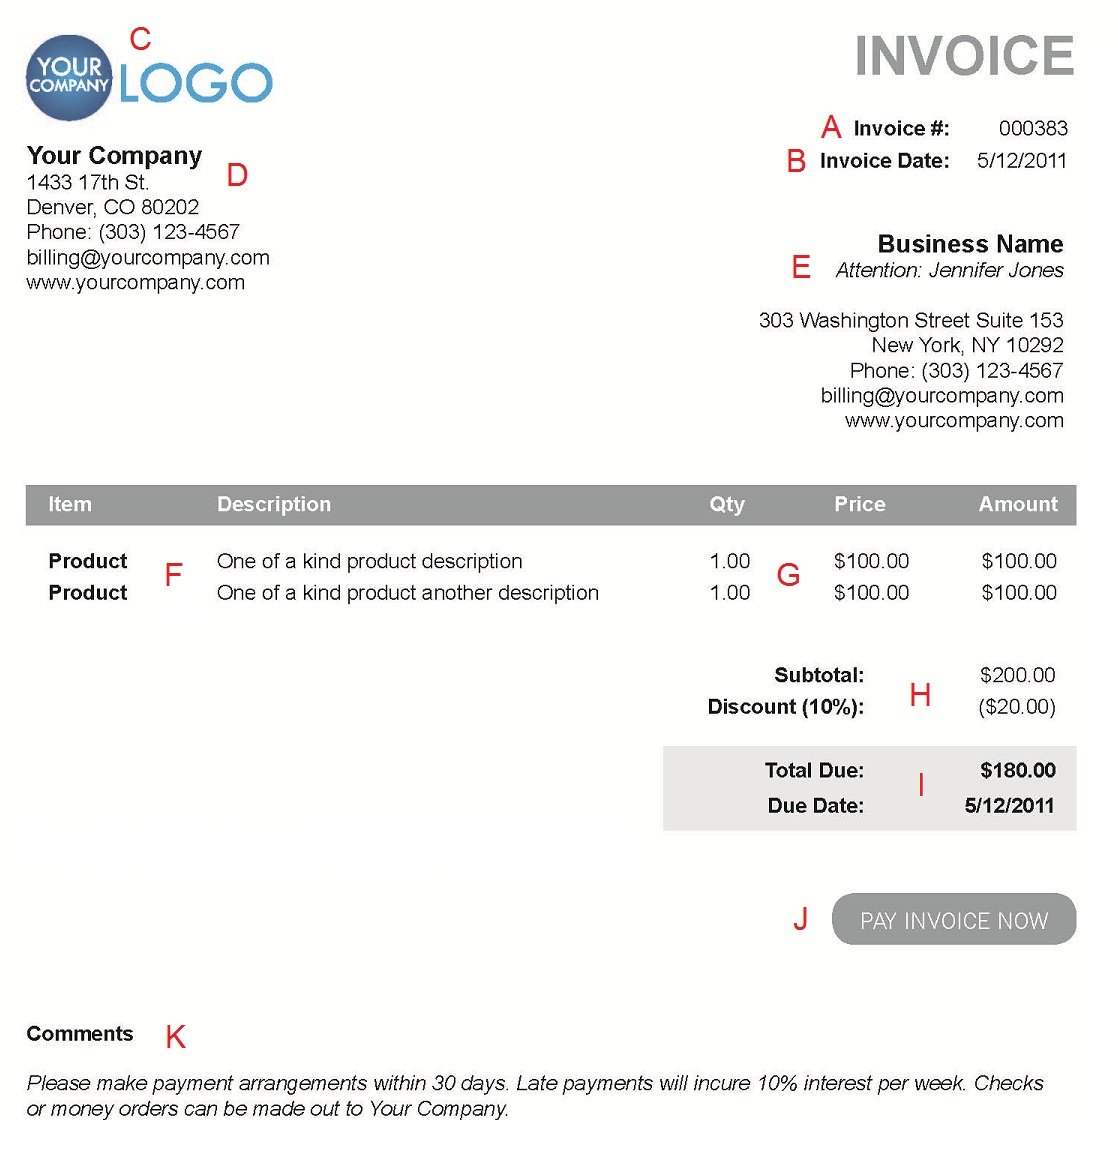 Theologygeekblogus  Outstanding The  Different Sections Of An Electronic Payment Invoice With Glamorous A  With Alluring Ms Word Custom Invoice Template Also Quickbooks Custom Invoice In Addition Free Excel Invoice Templates And Sample Invoice Template Excel As Well As Sales Invoice Template Word Additionally Reimbursement Invoice From Paysimplecom With Theologygeekblogus  Glamorous The  Different Sections Of An Electronic Payment Invoice With Alluring A  And Outstanding Ms Word Custom Invoice Template Also Quickbooks Custom Invoice In Addition Free Excel Invoice Templates From Paysimplecom